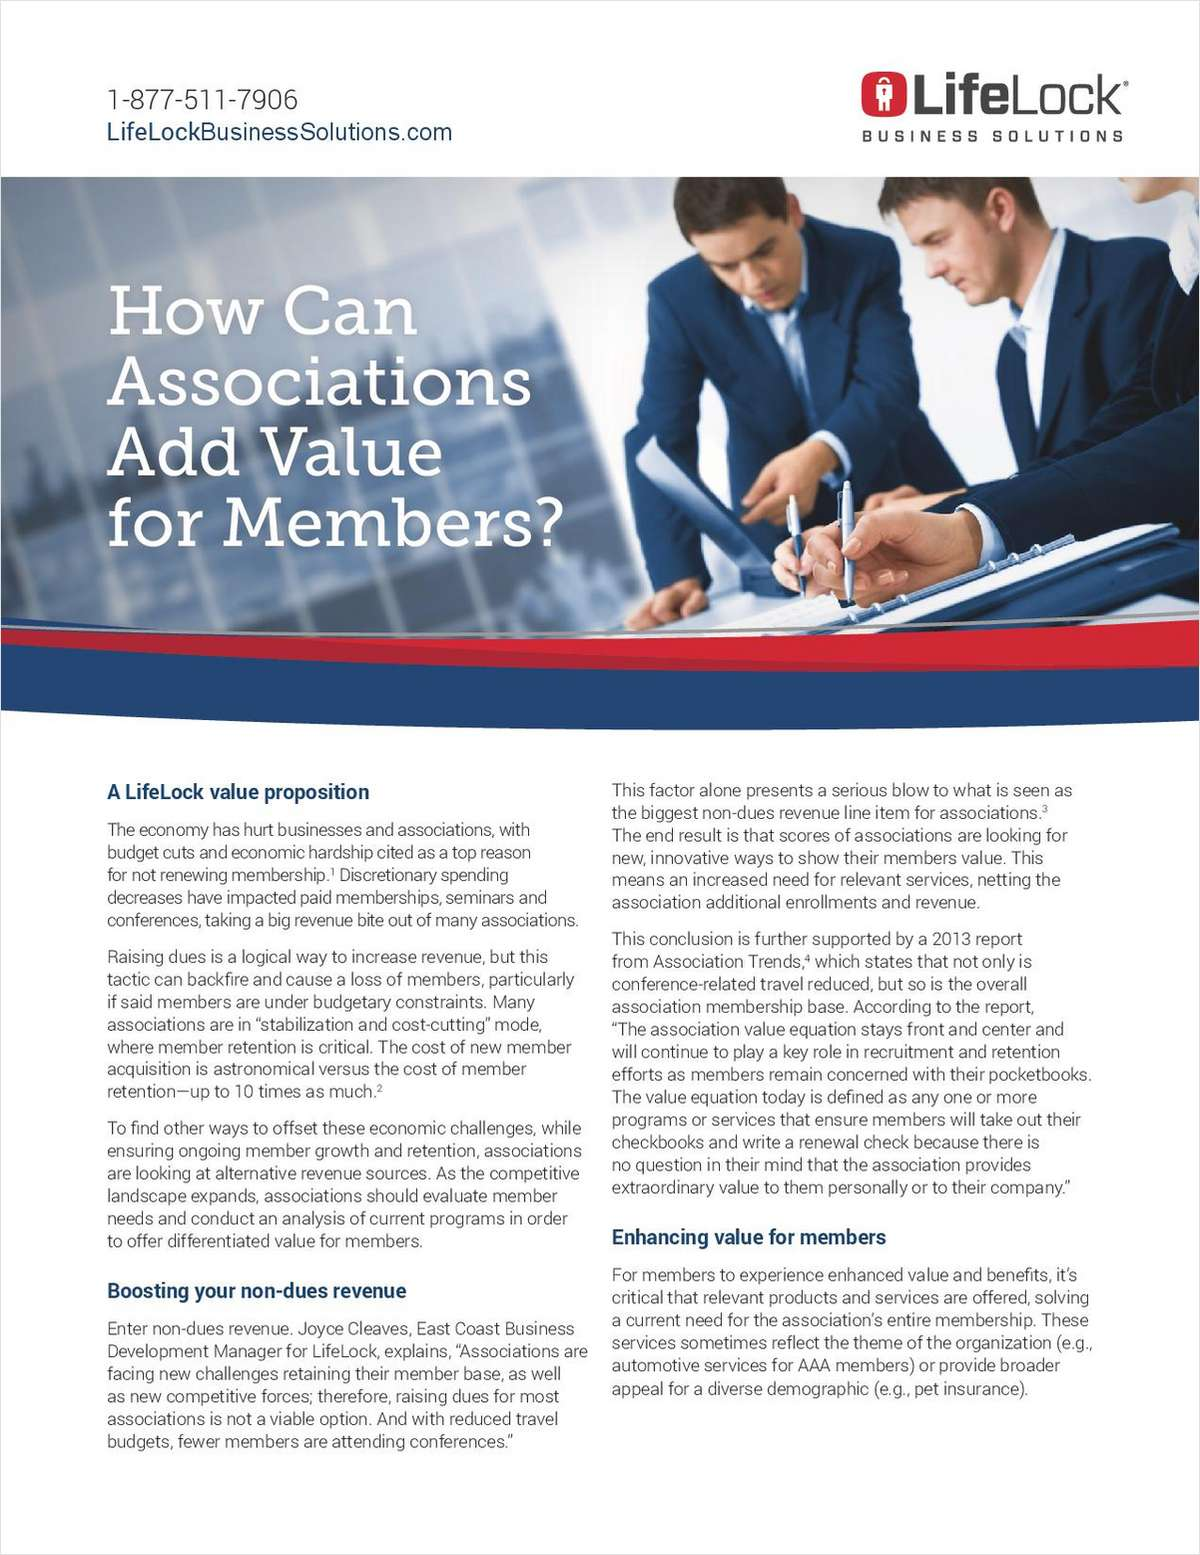 Find Out How Associations Can Add Value for Members